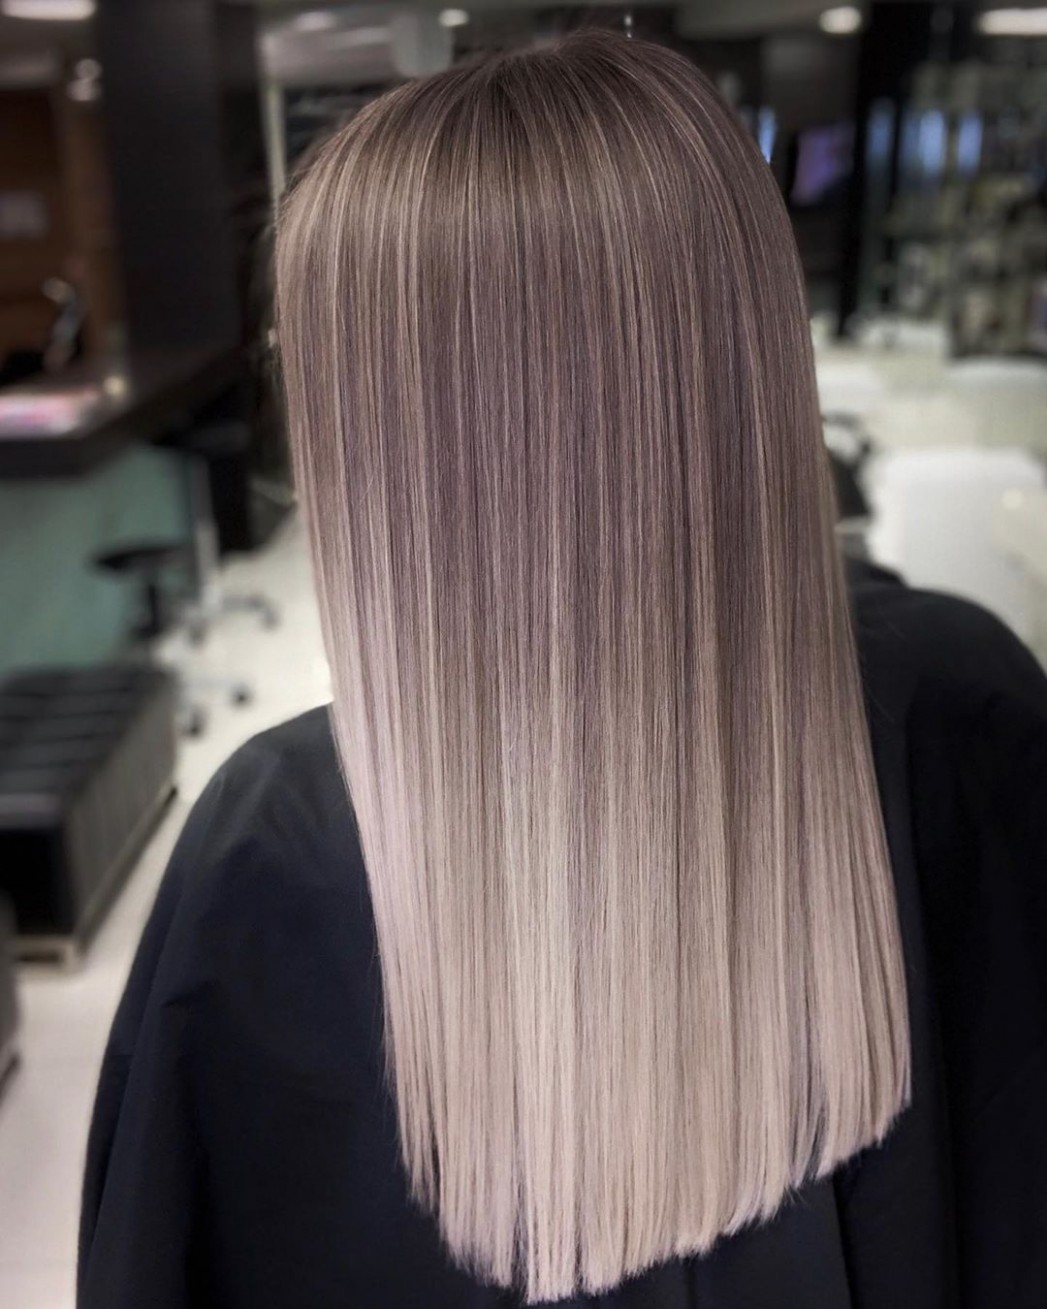 9 Medium Length Hairstyles And Color Switch Ups Medium Haircut 9 Long Hairstyles For Women 2021